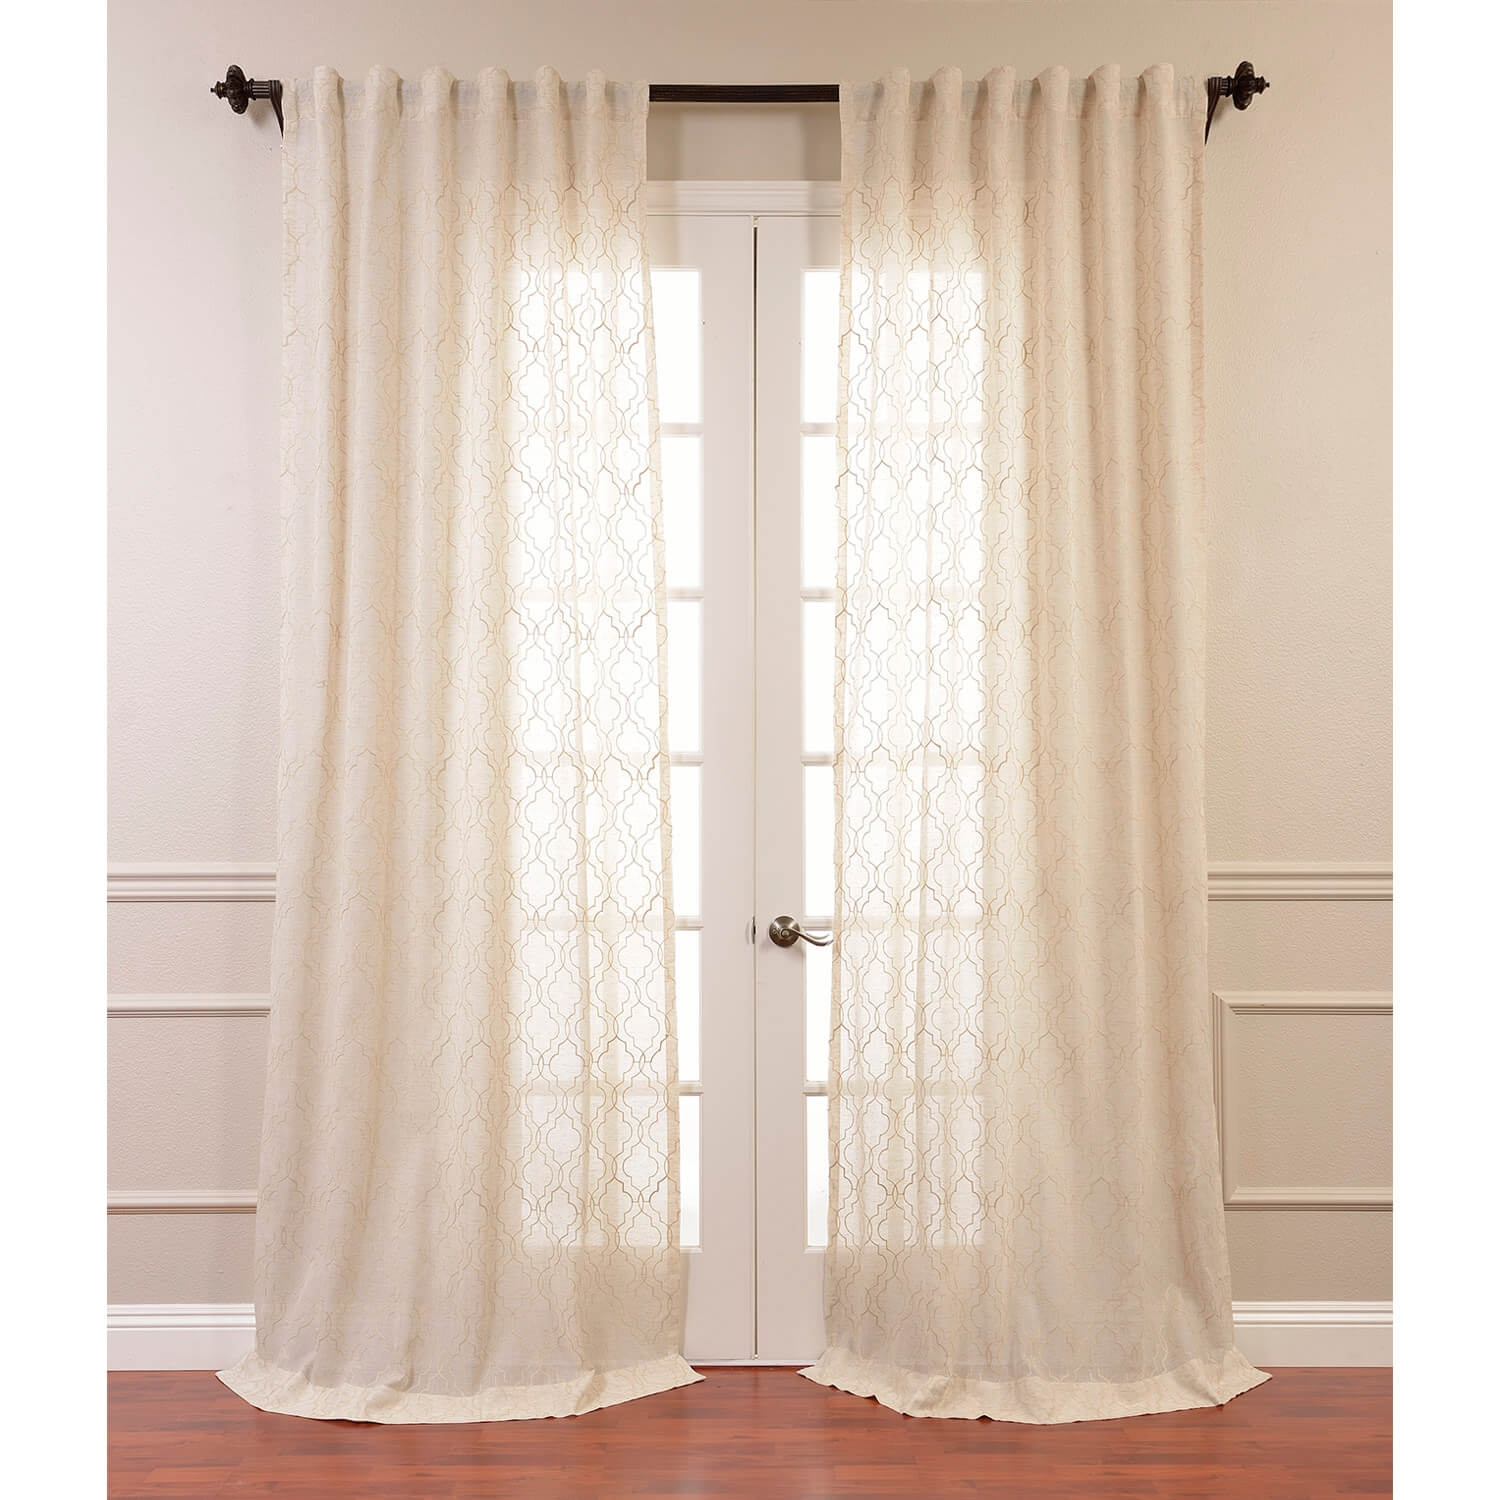 Sheer Curtains And Drapes Half Price Drapes Throughout Curtains Sheers (Image 17 of 25)